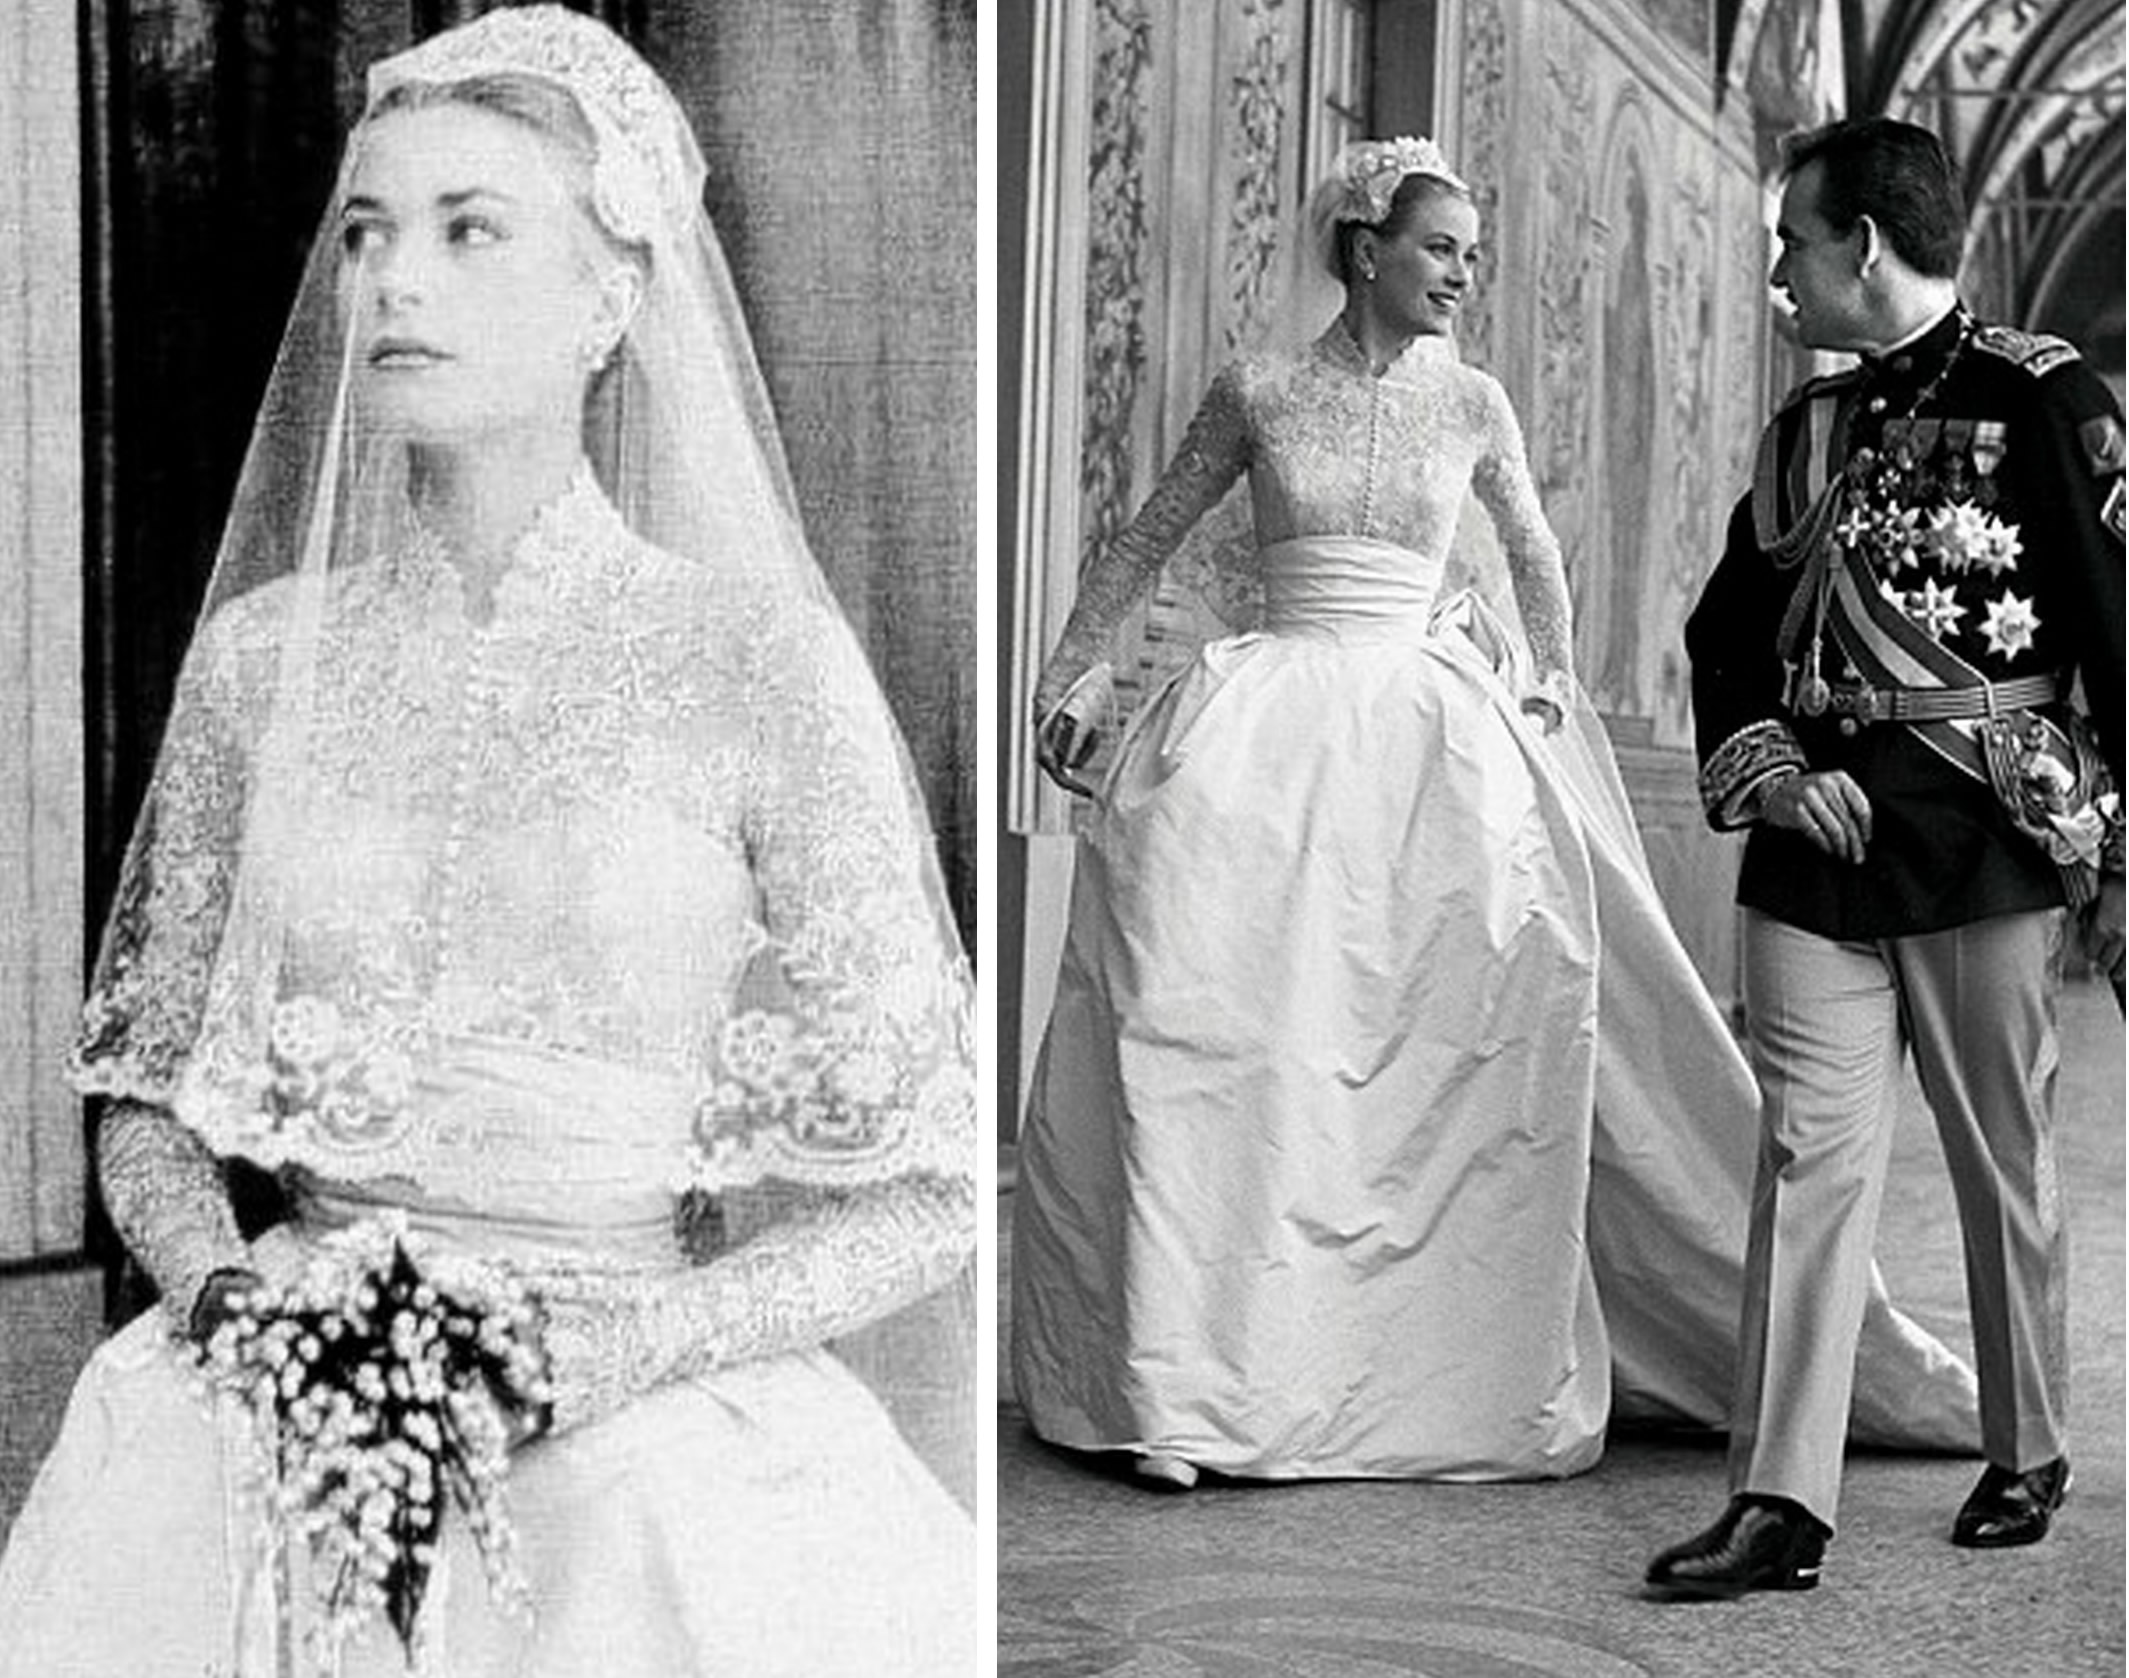 The Most Famous and Iconic Wedding Dresses Ever